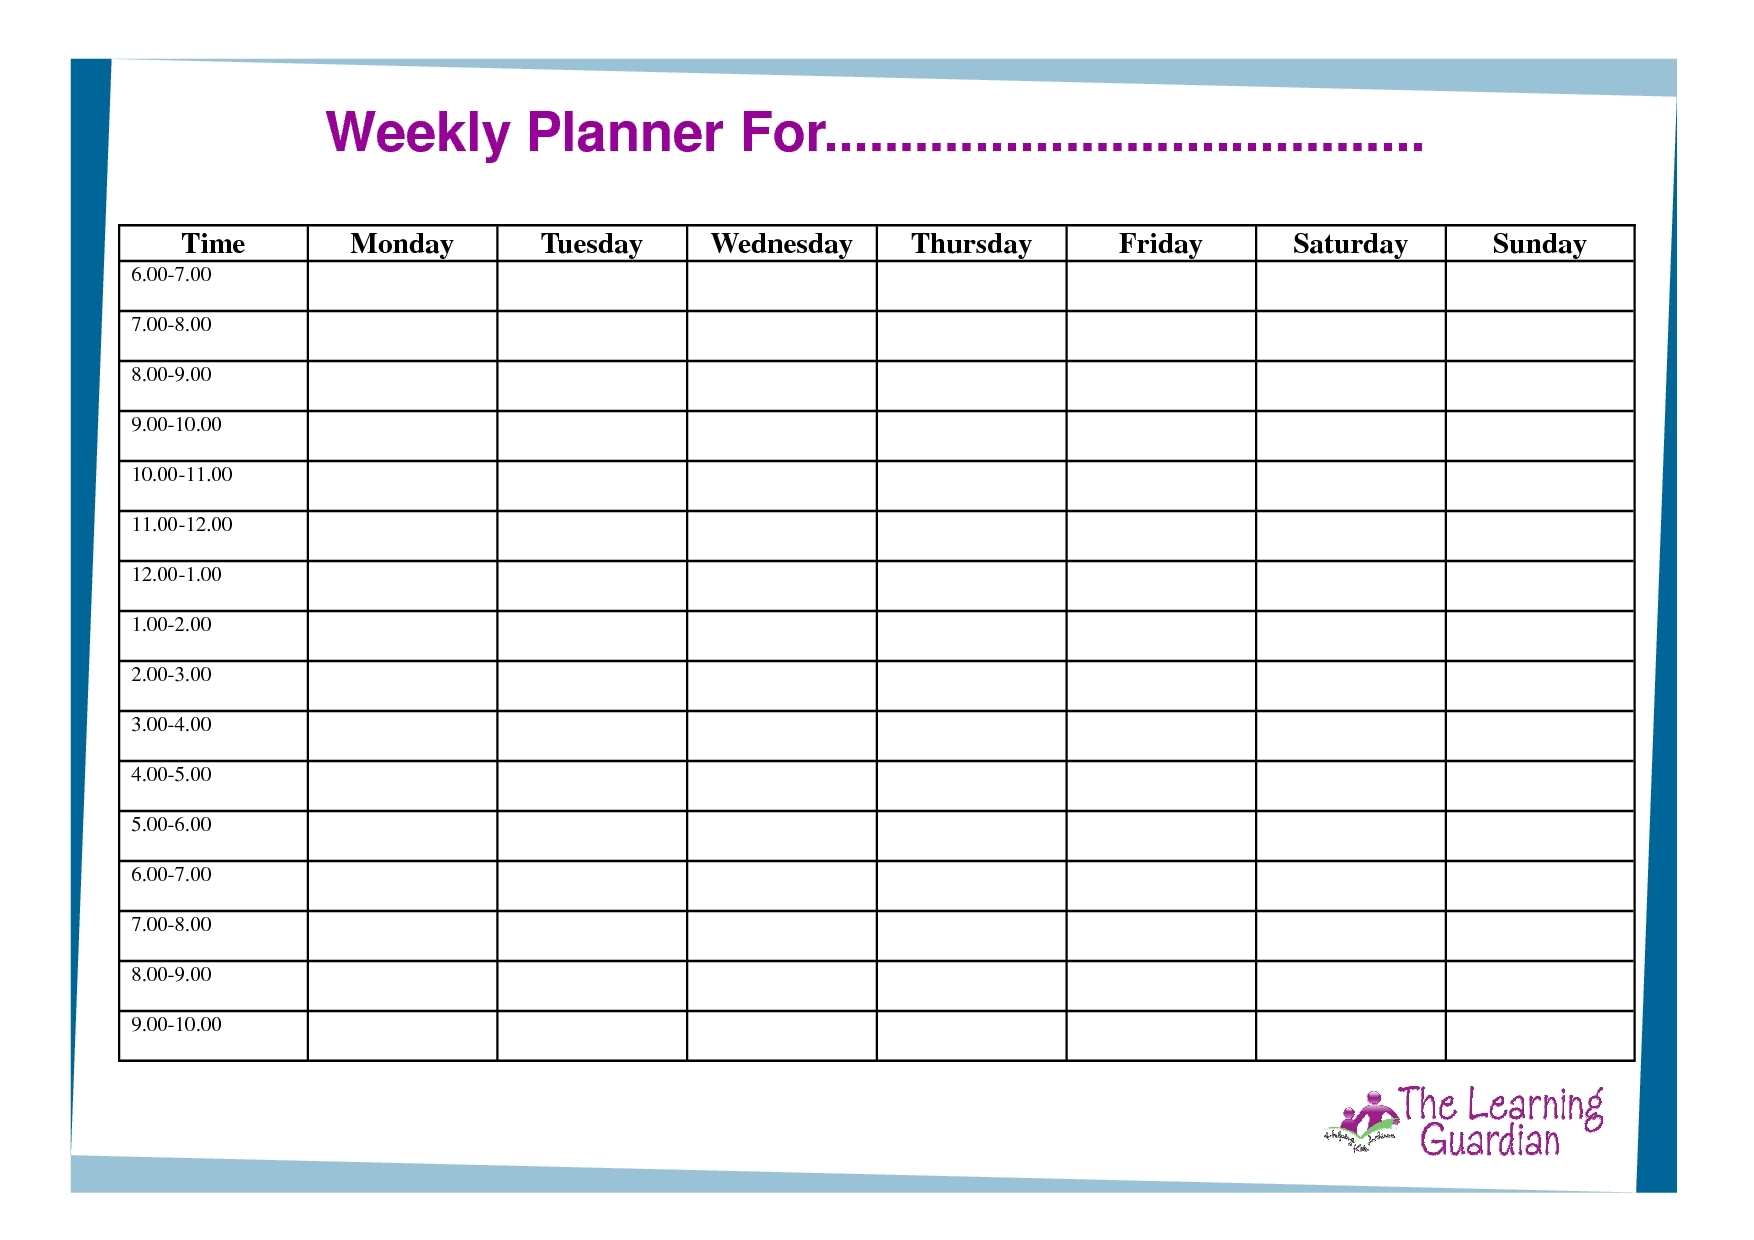 Weekly Calendar Template Monday Friday - Yeniscale.co  Printable Pick Up Schedule Template